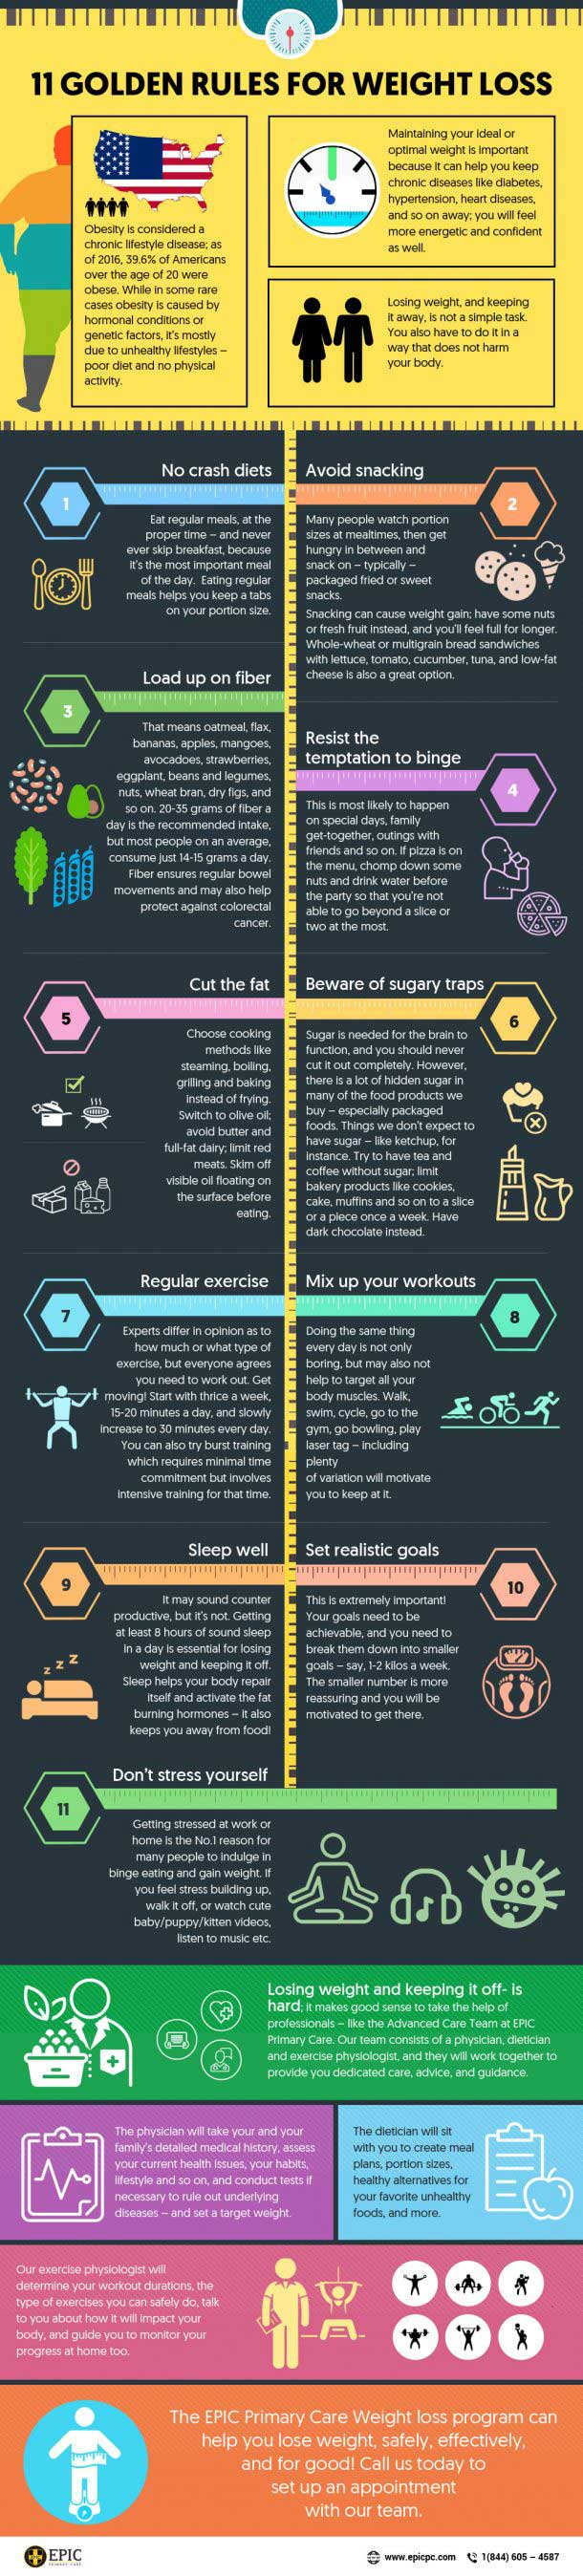 golden-rules-for-weight-loss